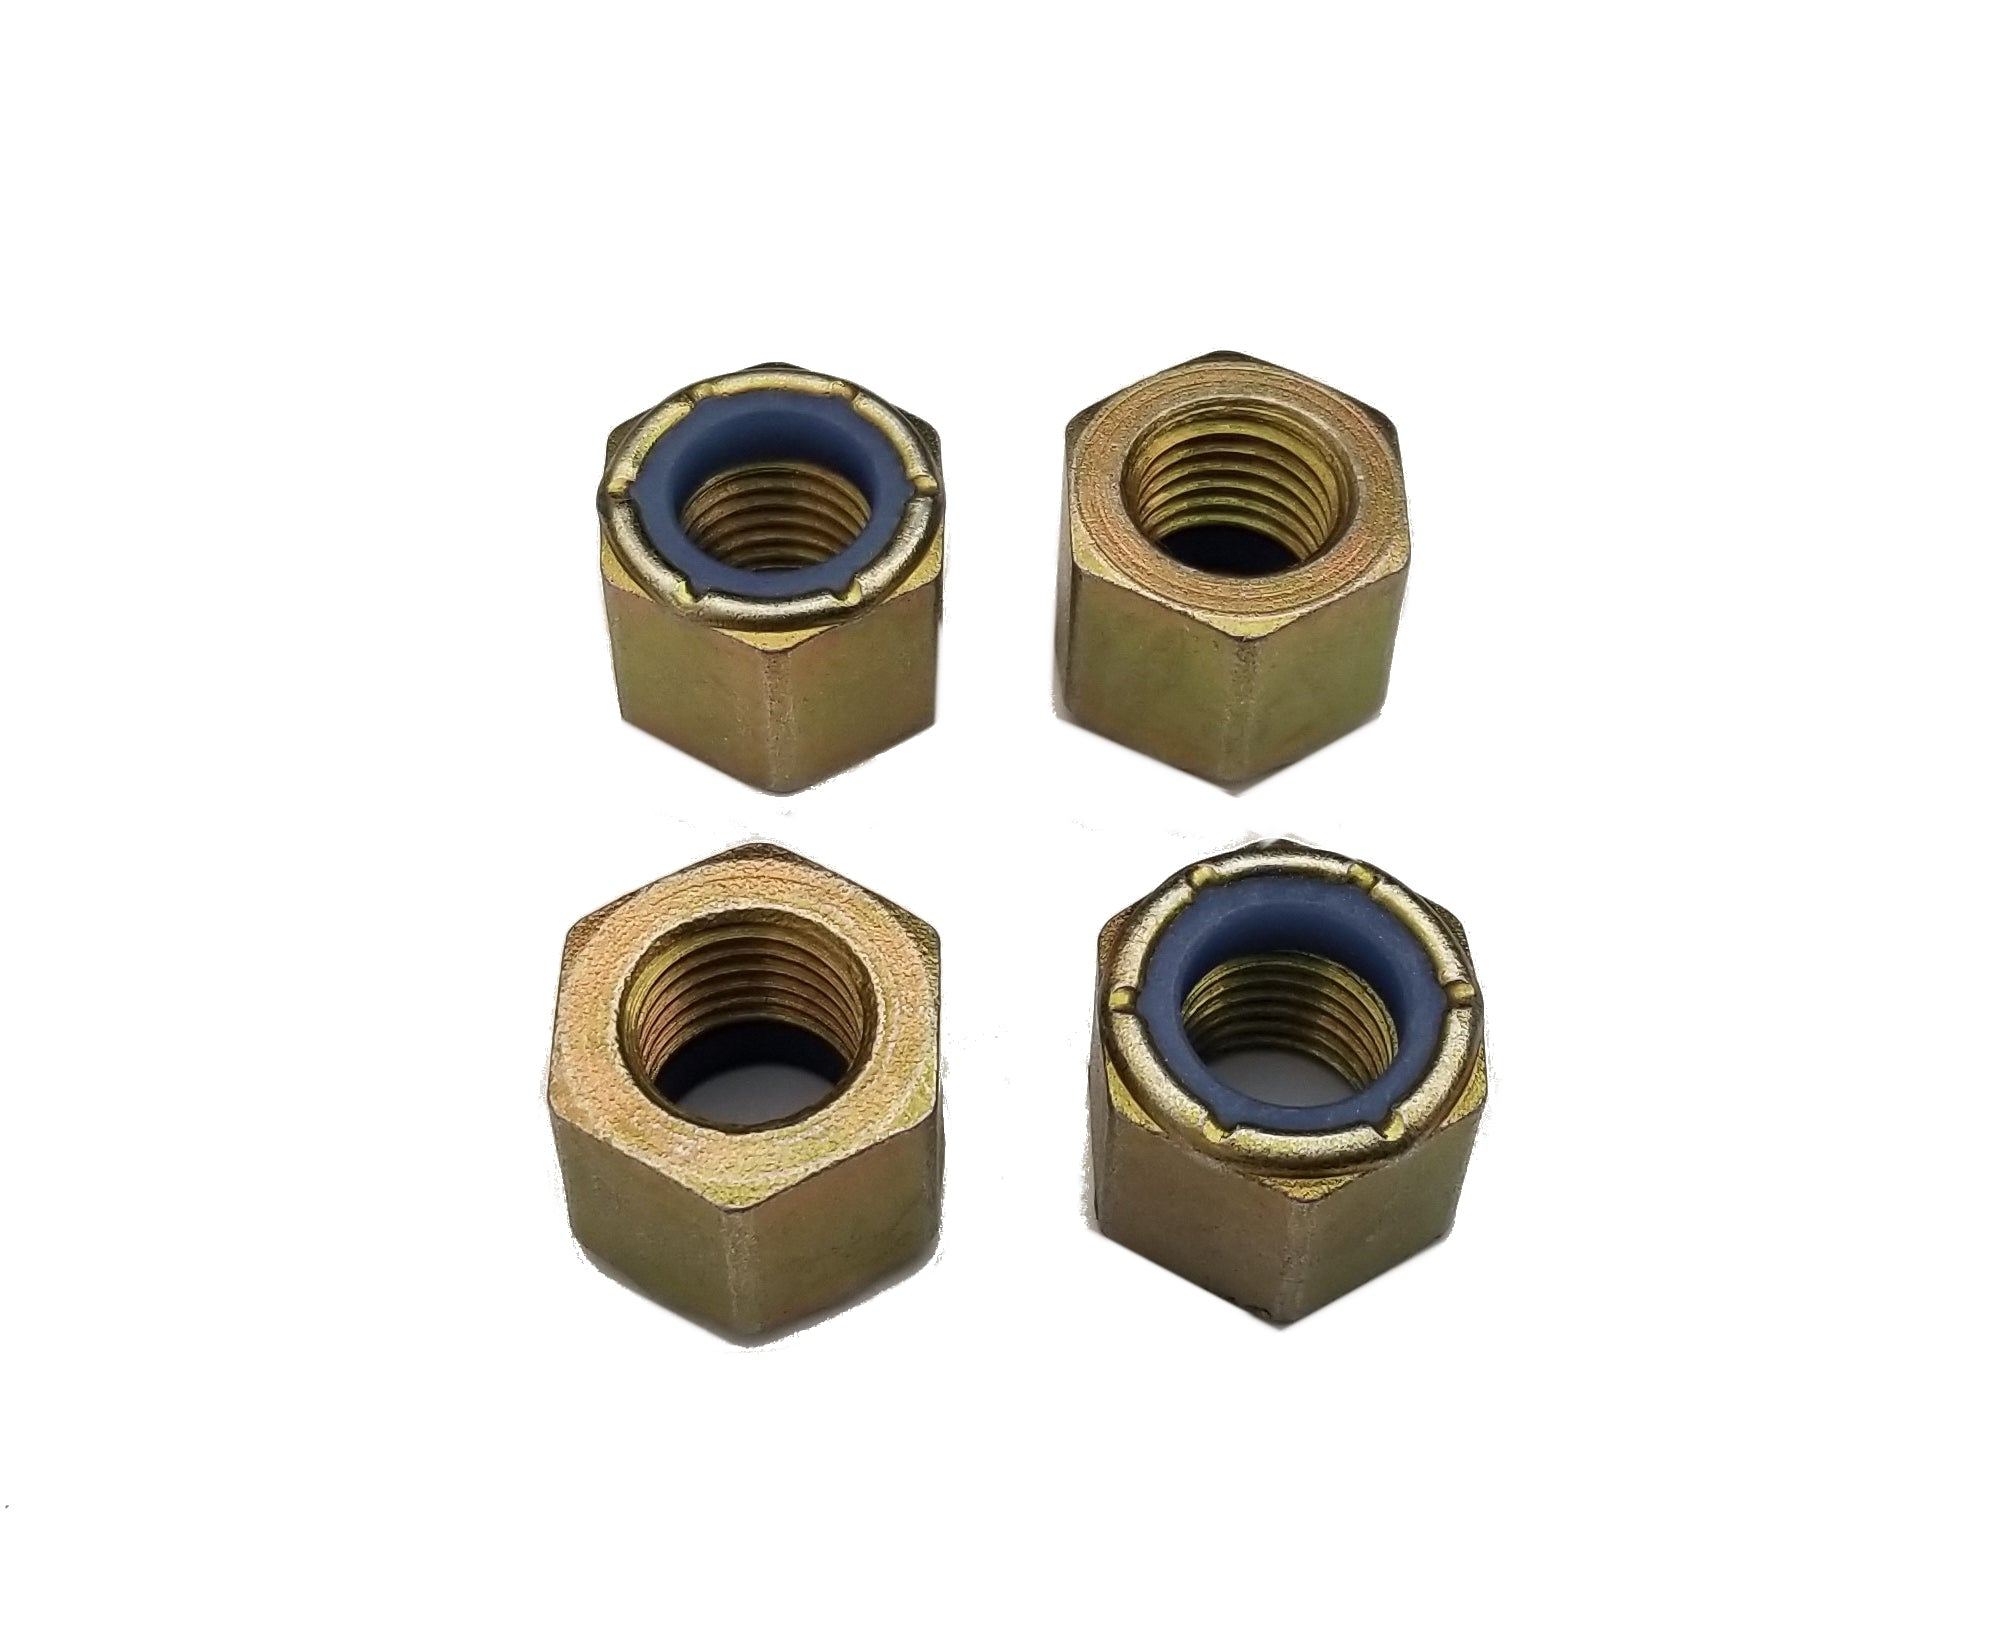 John Deere Original Equipment Lock Nut (4 Pack) - 14M7325